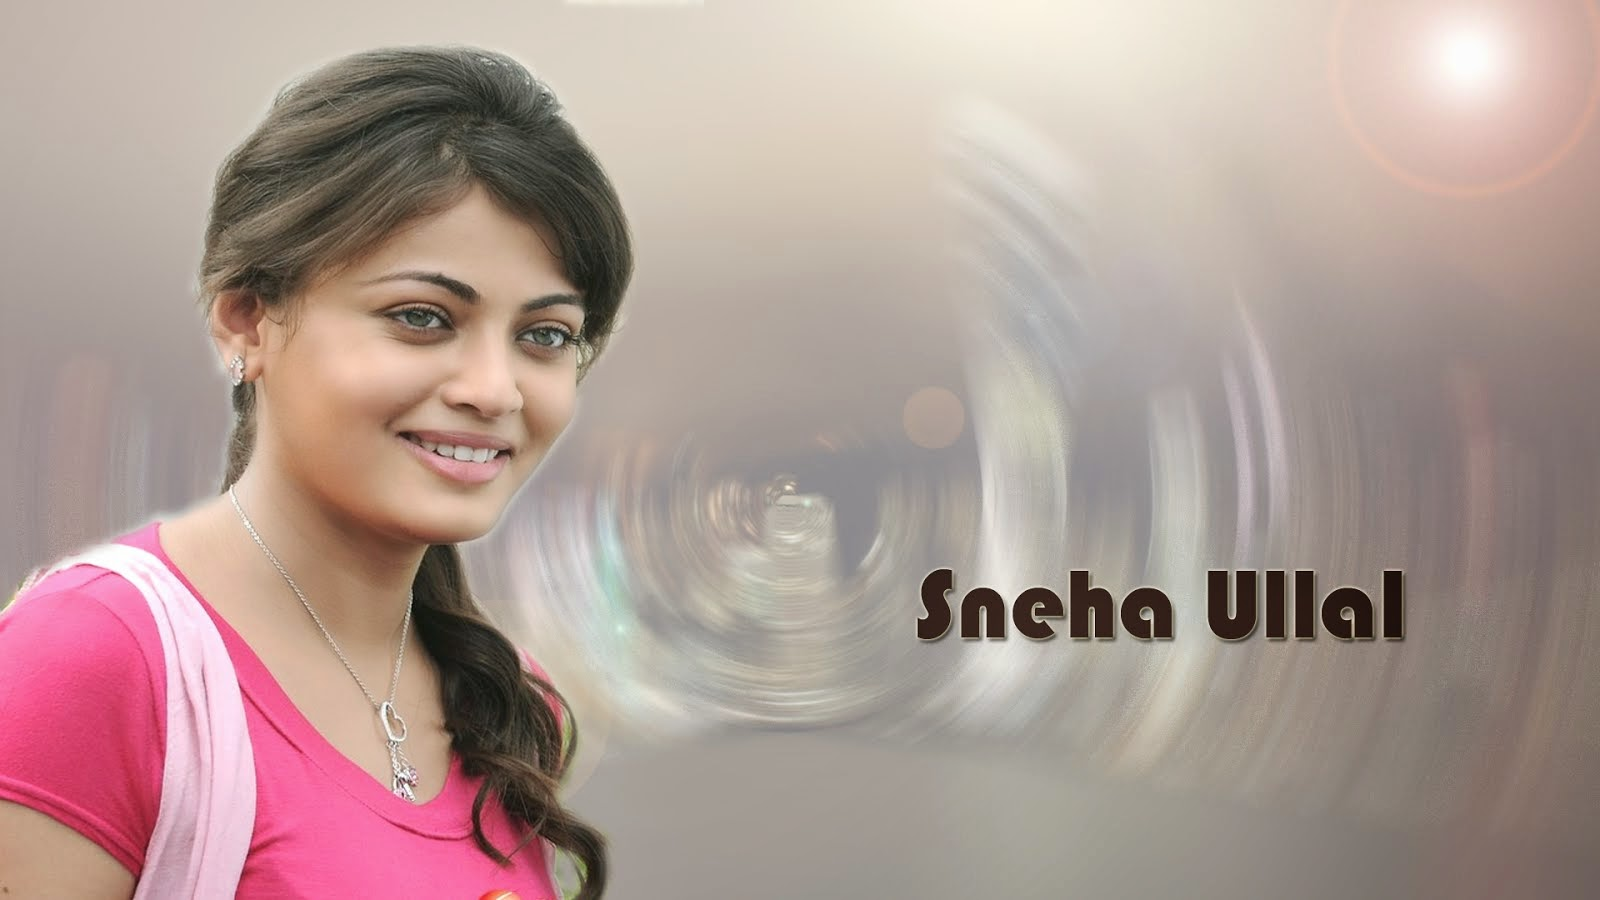 Sneha Ullal Great Smile HD Wallpaper Wallpaperrs - sneha ullal great smile wallpapers